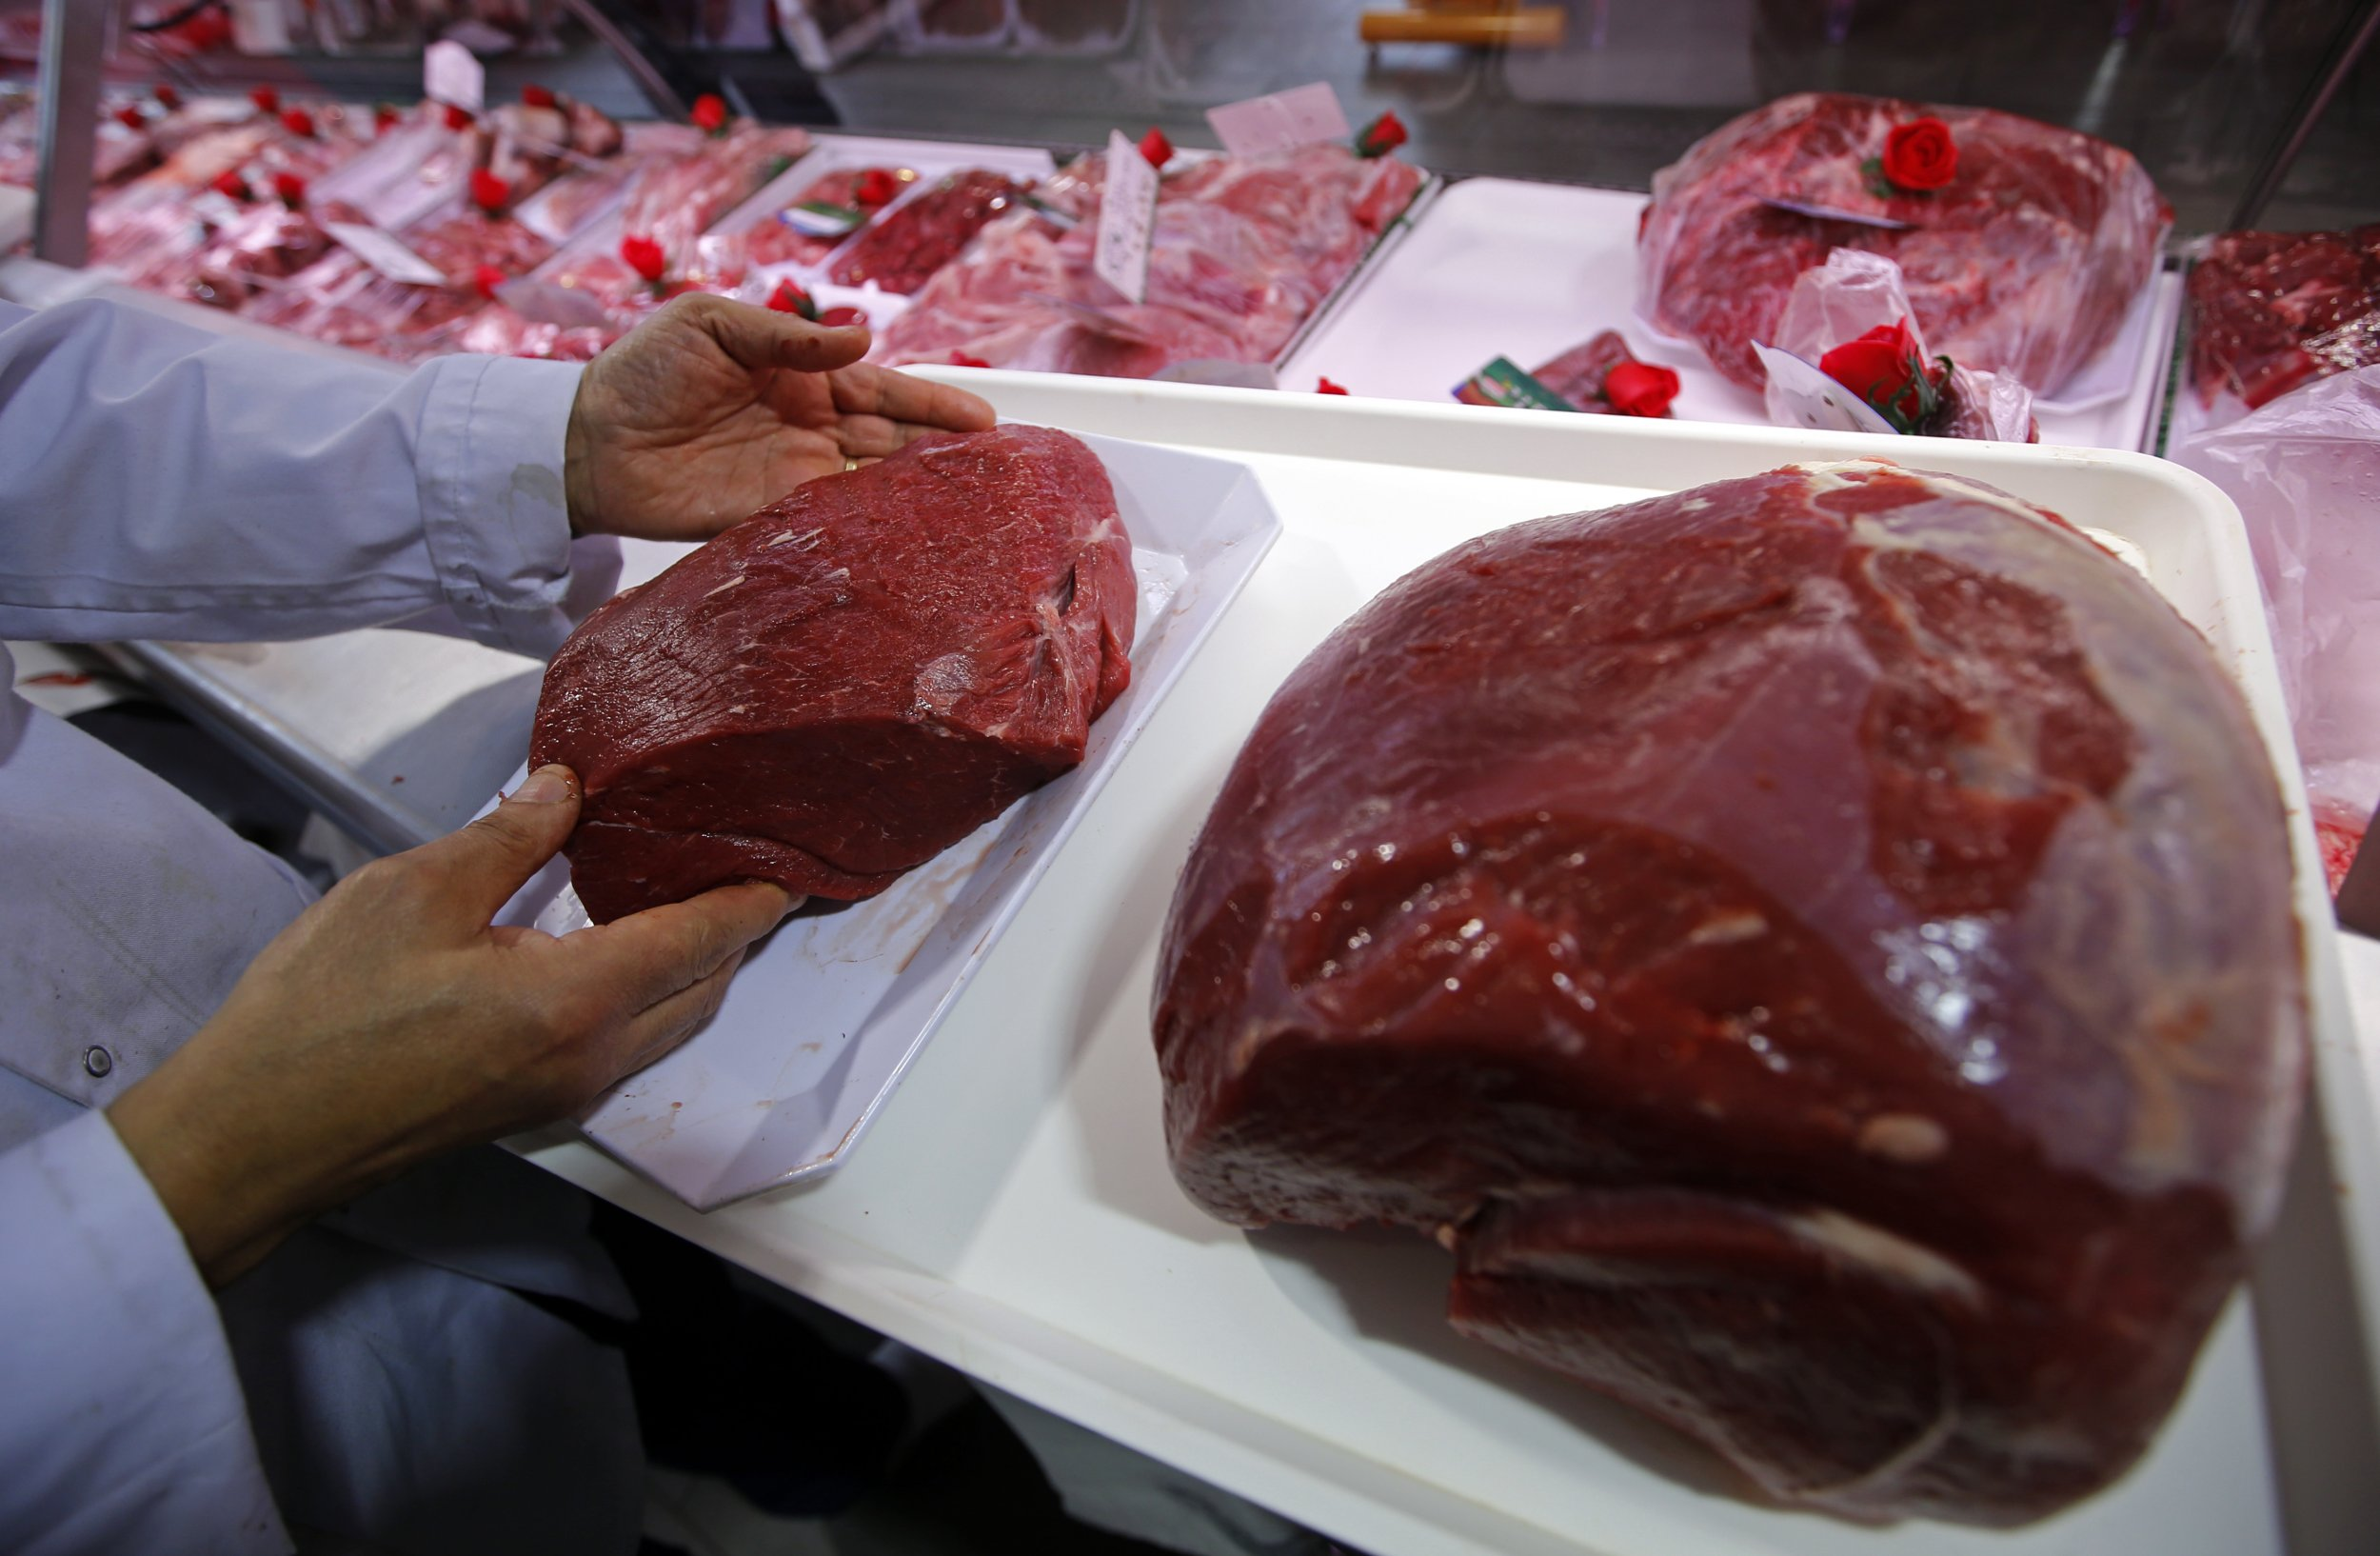 Meat consumption is worsening climate change